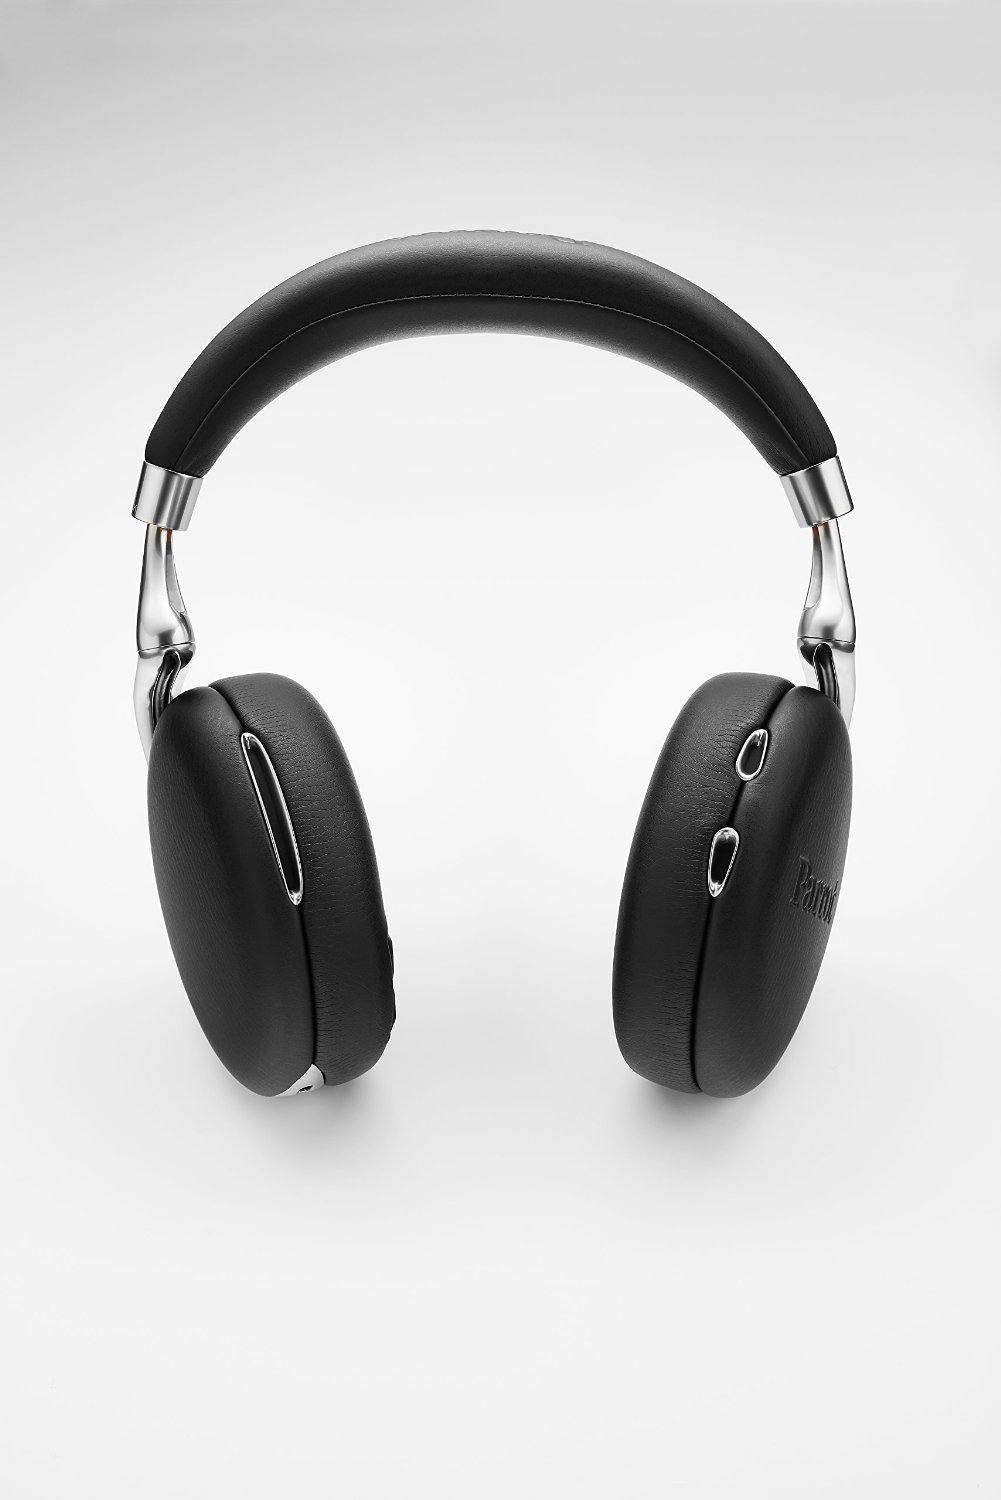 parrot zik 2.0 instructions